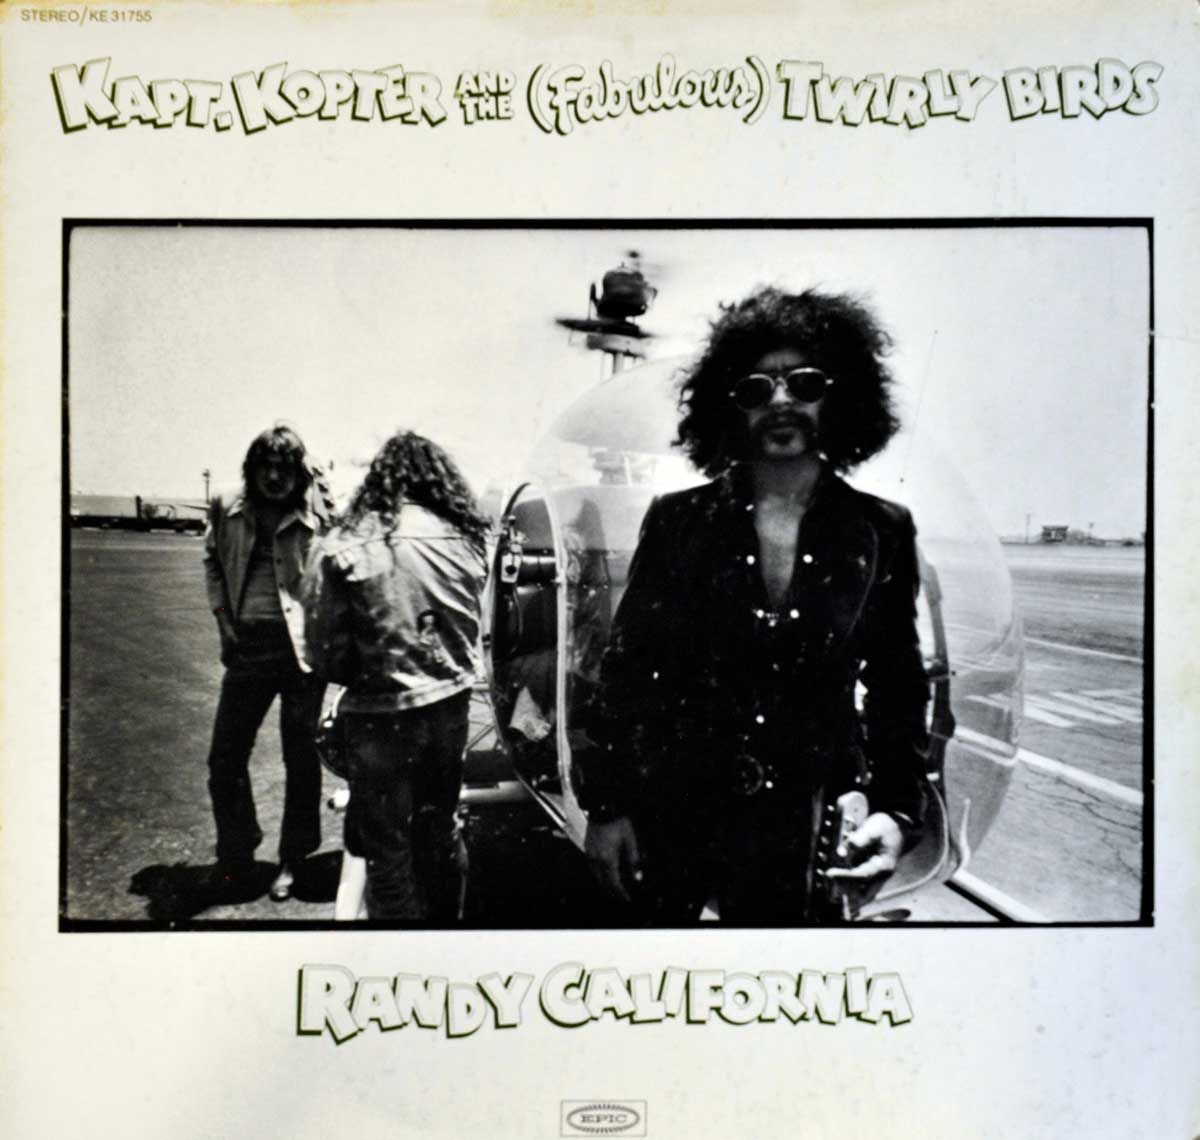 large photo of the album front cover of: RANDY CALIFORNIA KAPT. KOPTER AND THE FABULOUS TWIRLY BIRDS